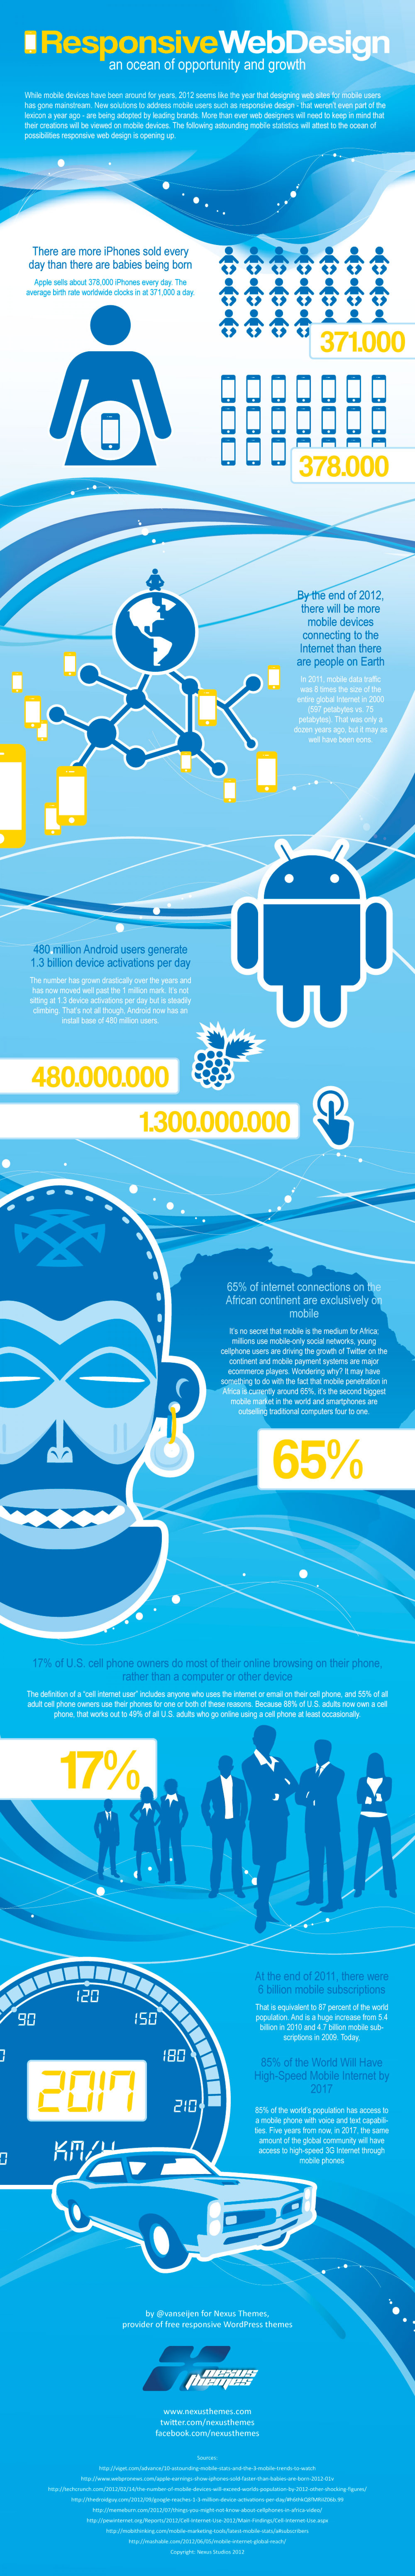 Responsive Webdesign: an ocean of opportunity and growth Infographic